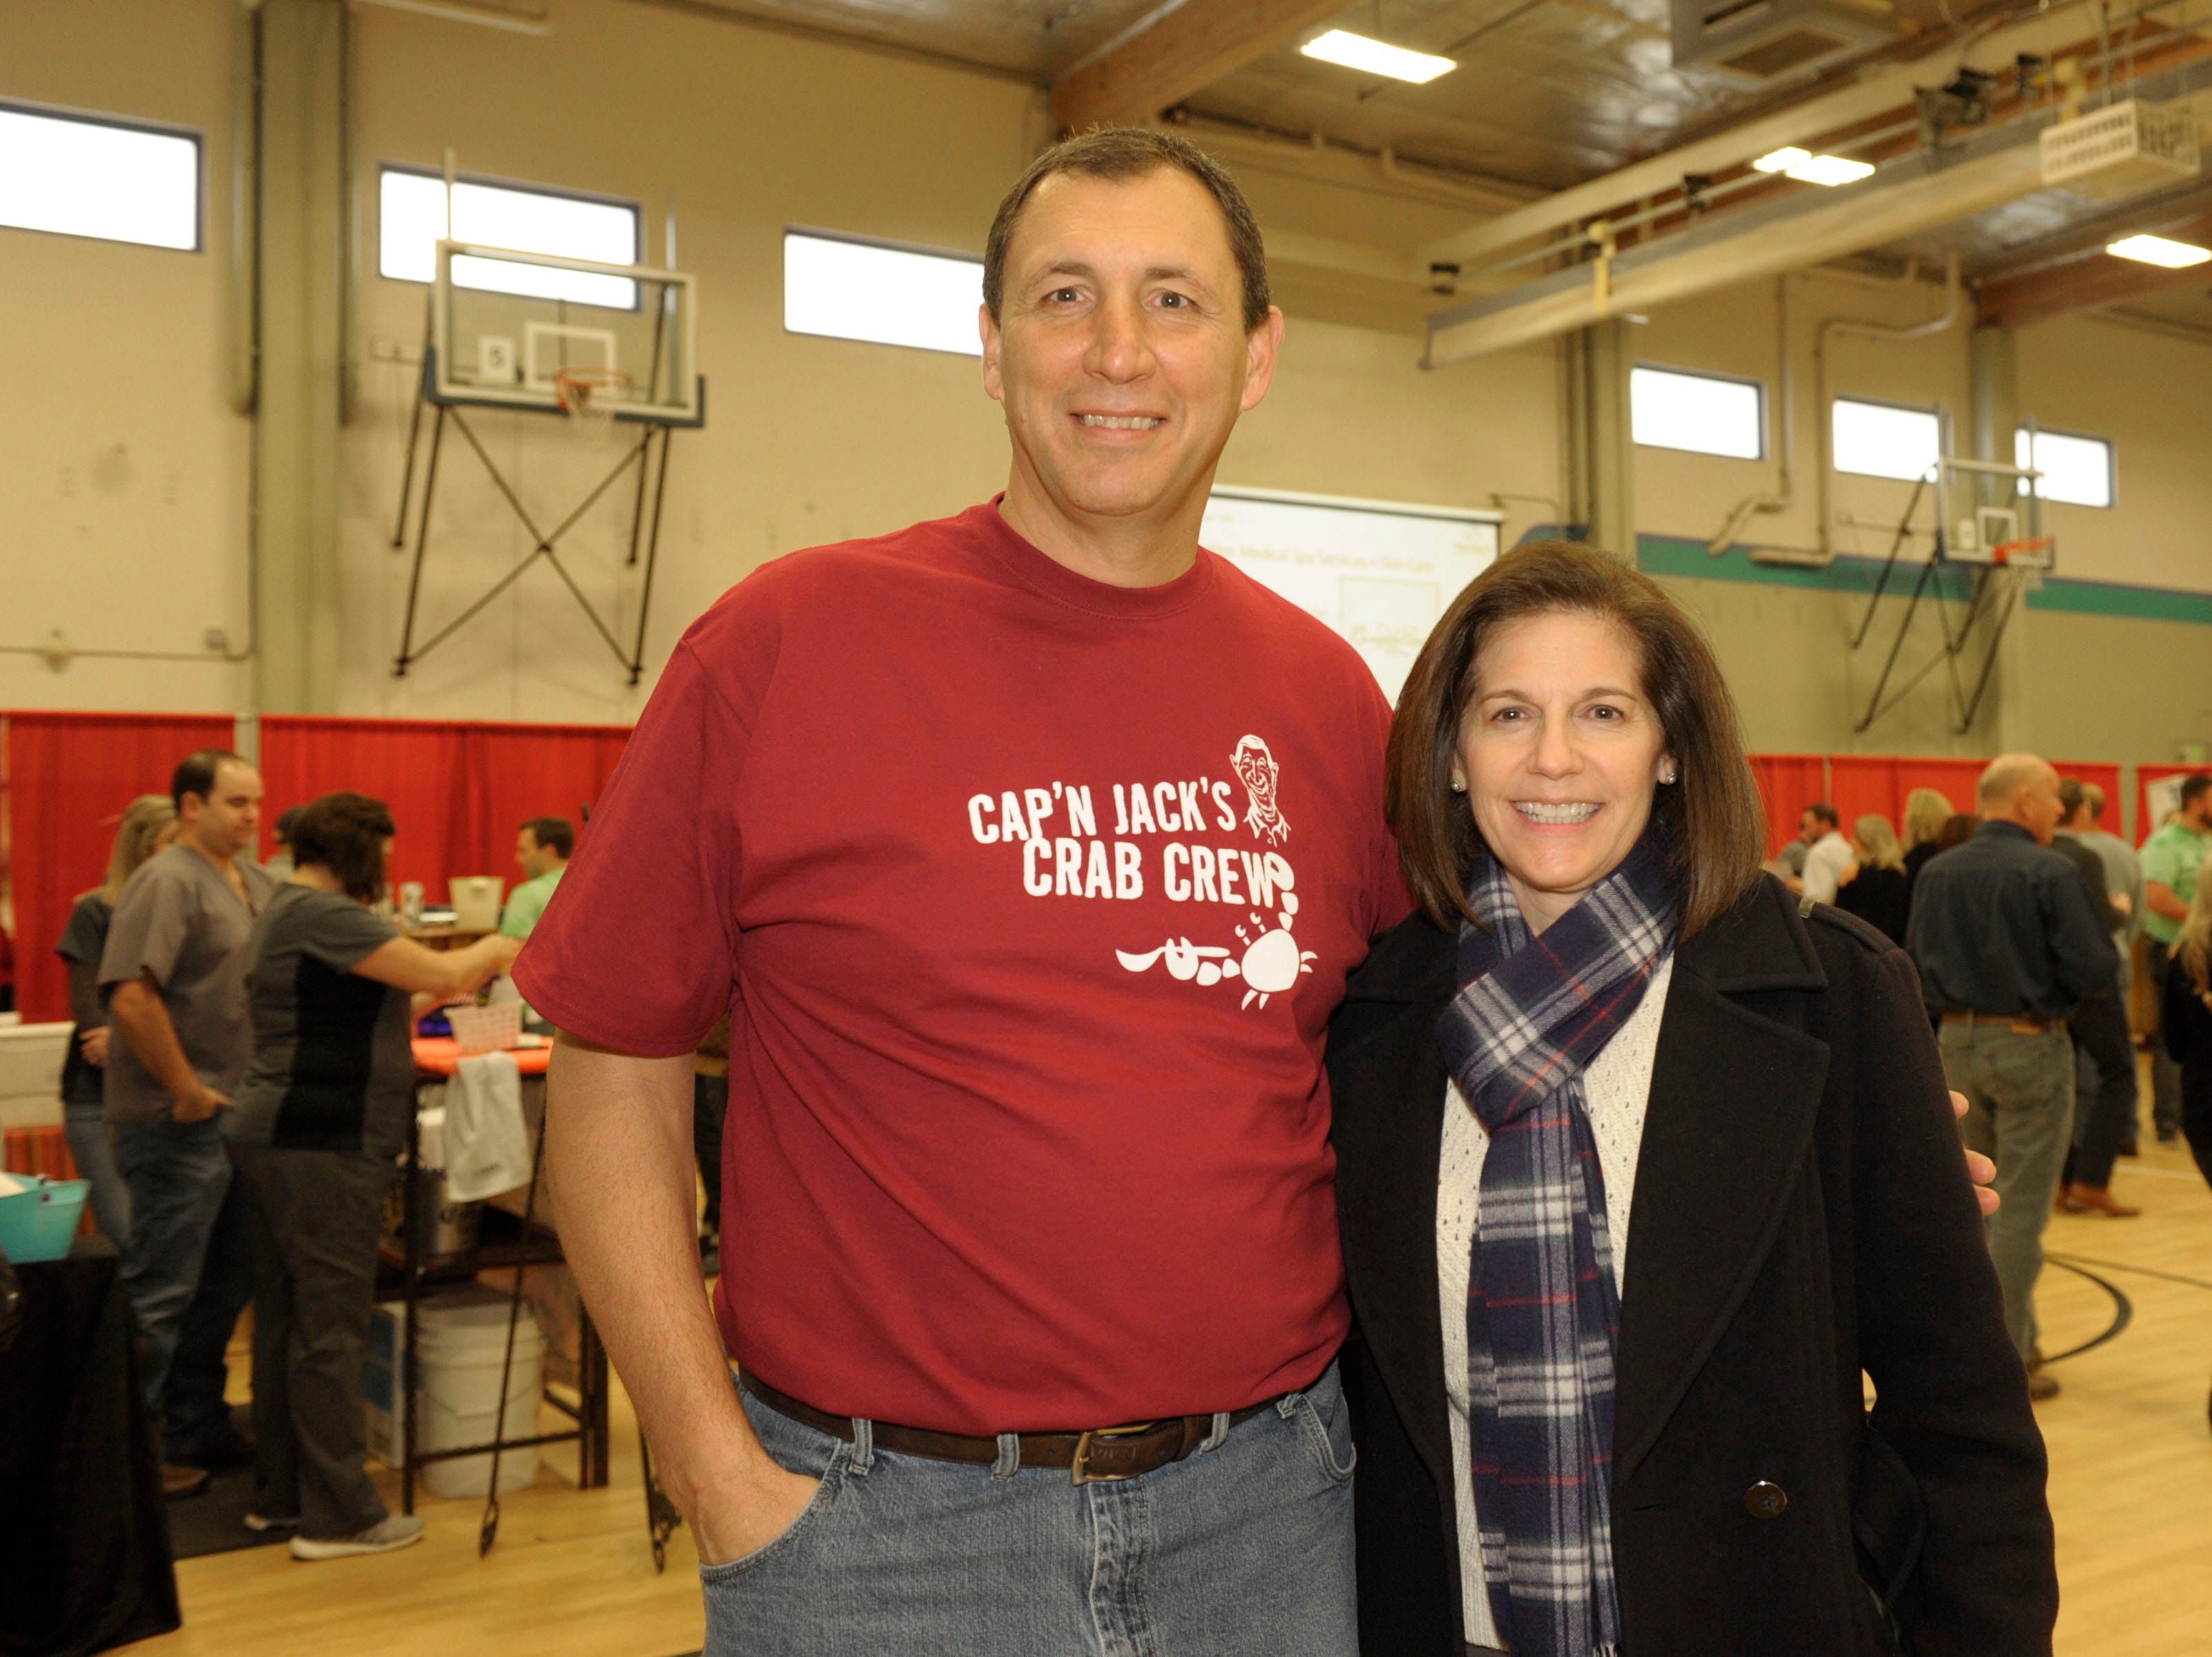 Mike Wurm and Catherine Cortez Masto attend the 39th Annual Jack T. Reviglio Cioppino Feed and Auction at the Boys & Girls Club of Truckee Meadows Sat., Feb. 23, 2019. Photos by Lisa J. Tolda/Special to the RGJ.